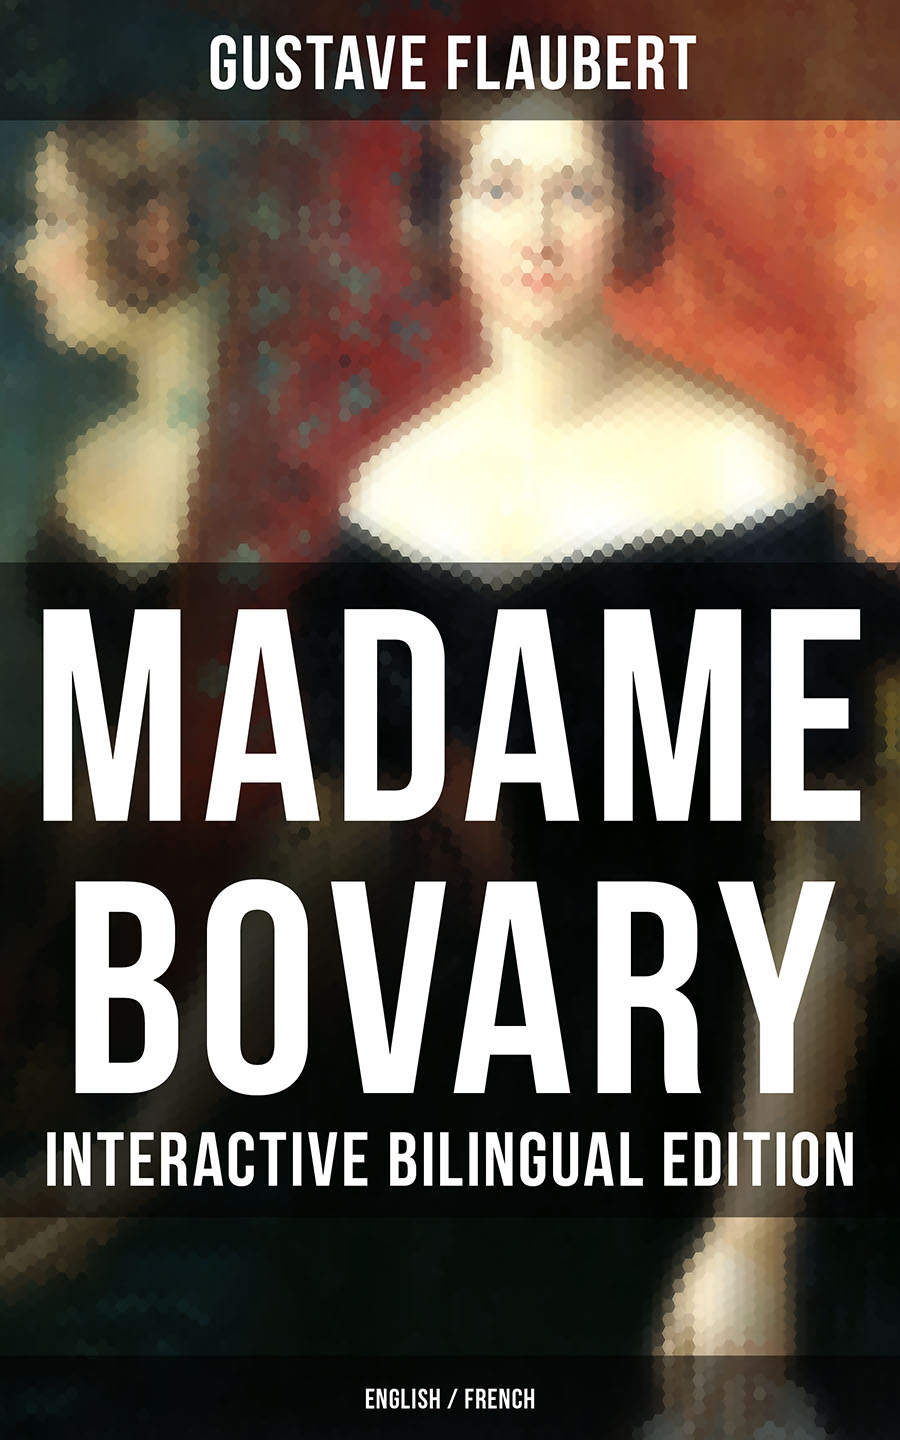 Гюстав Флобер MADAME BOVARY - Interactive Bilingual Edition (English / French) karr alphonse proverbes french edition